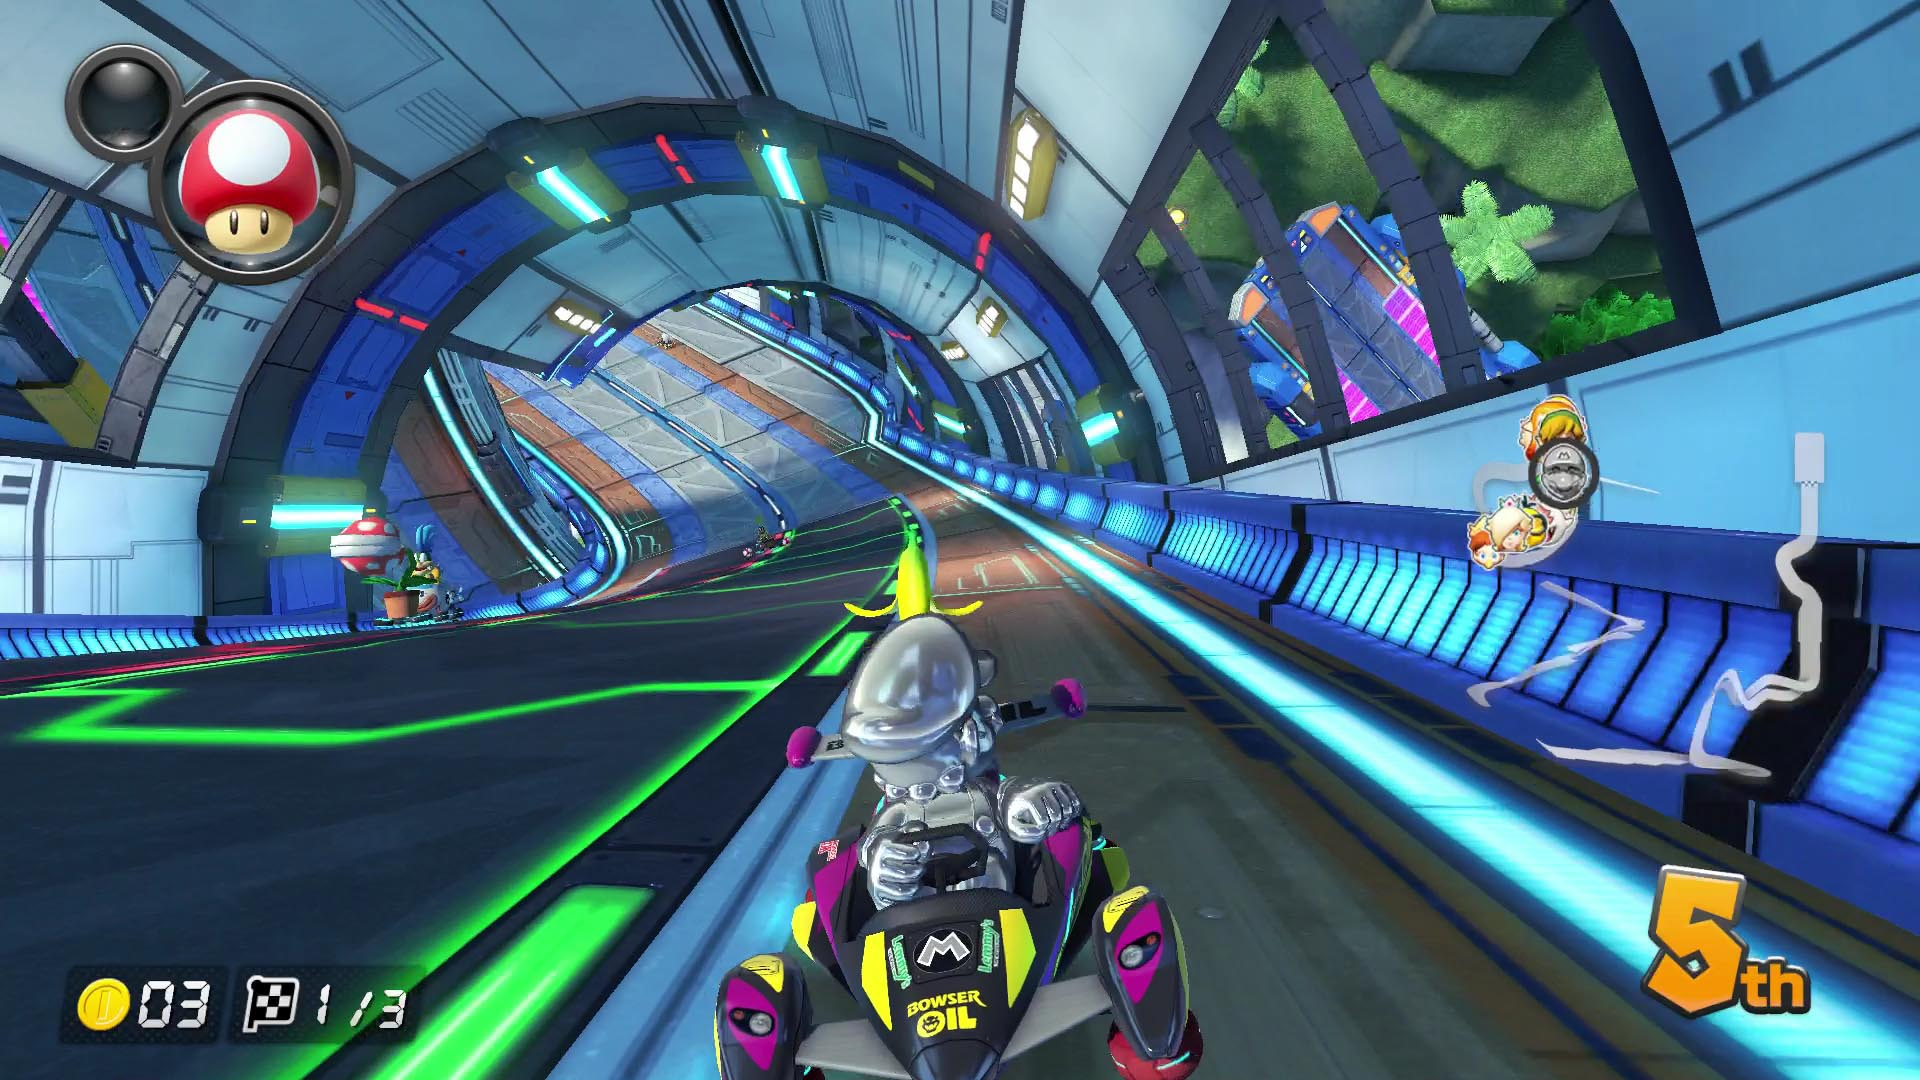 Mario kart 8 deluxe nine tips to give you a head start polygon one thing a lot of players overlook is the dedicated rearview mirror button on the switch all you need to do is press x and you look behind you as long as buycottarizona